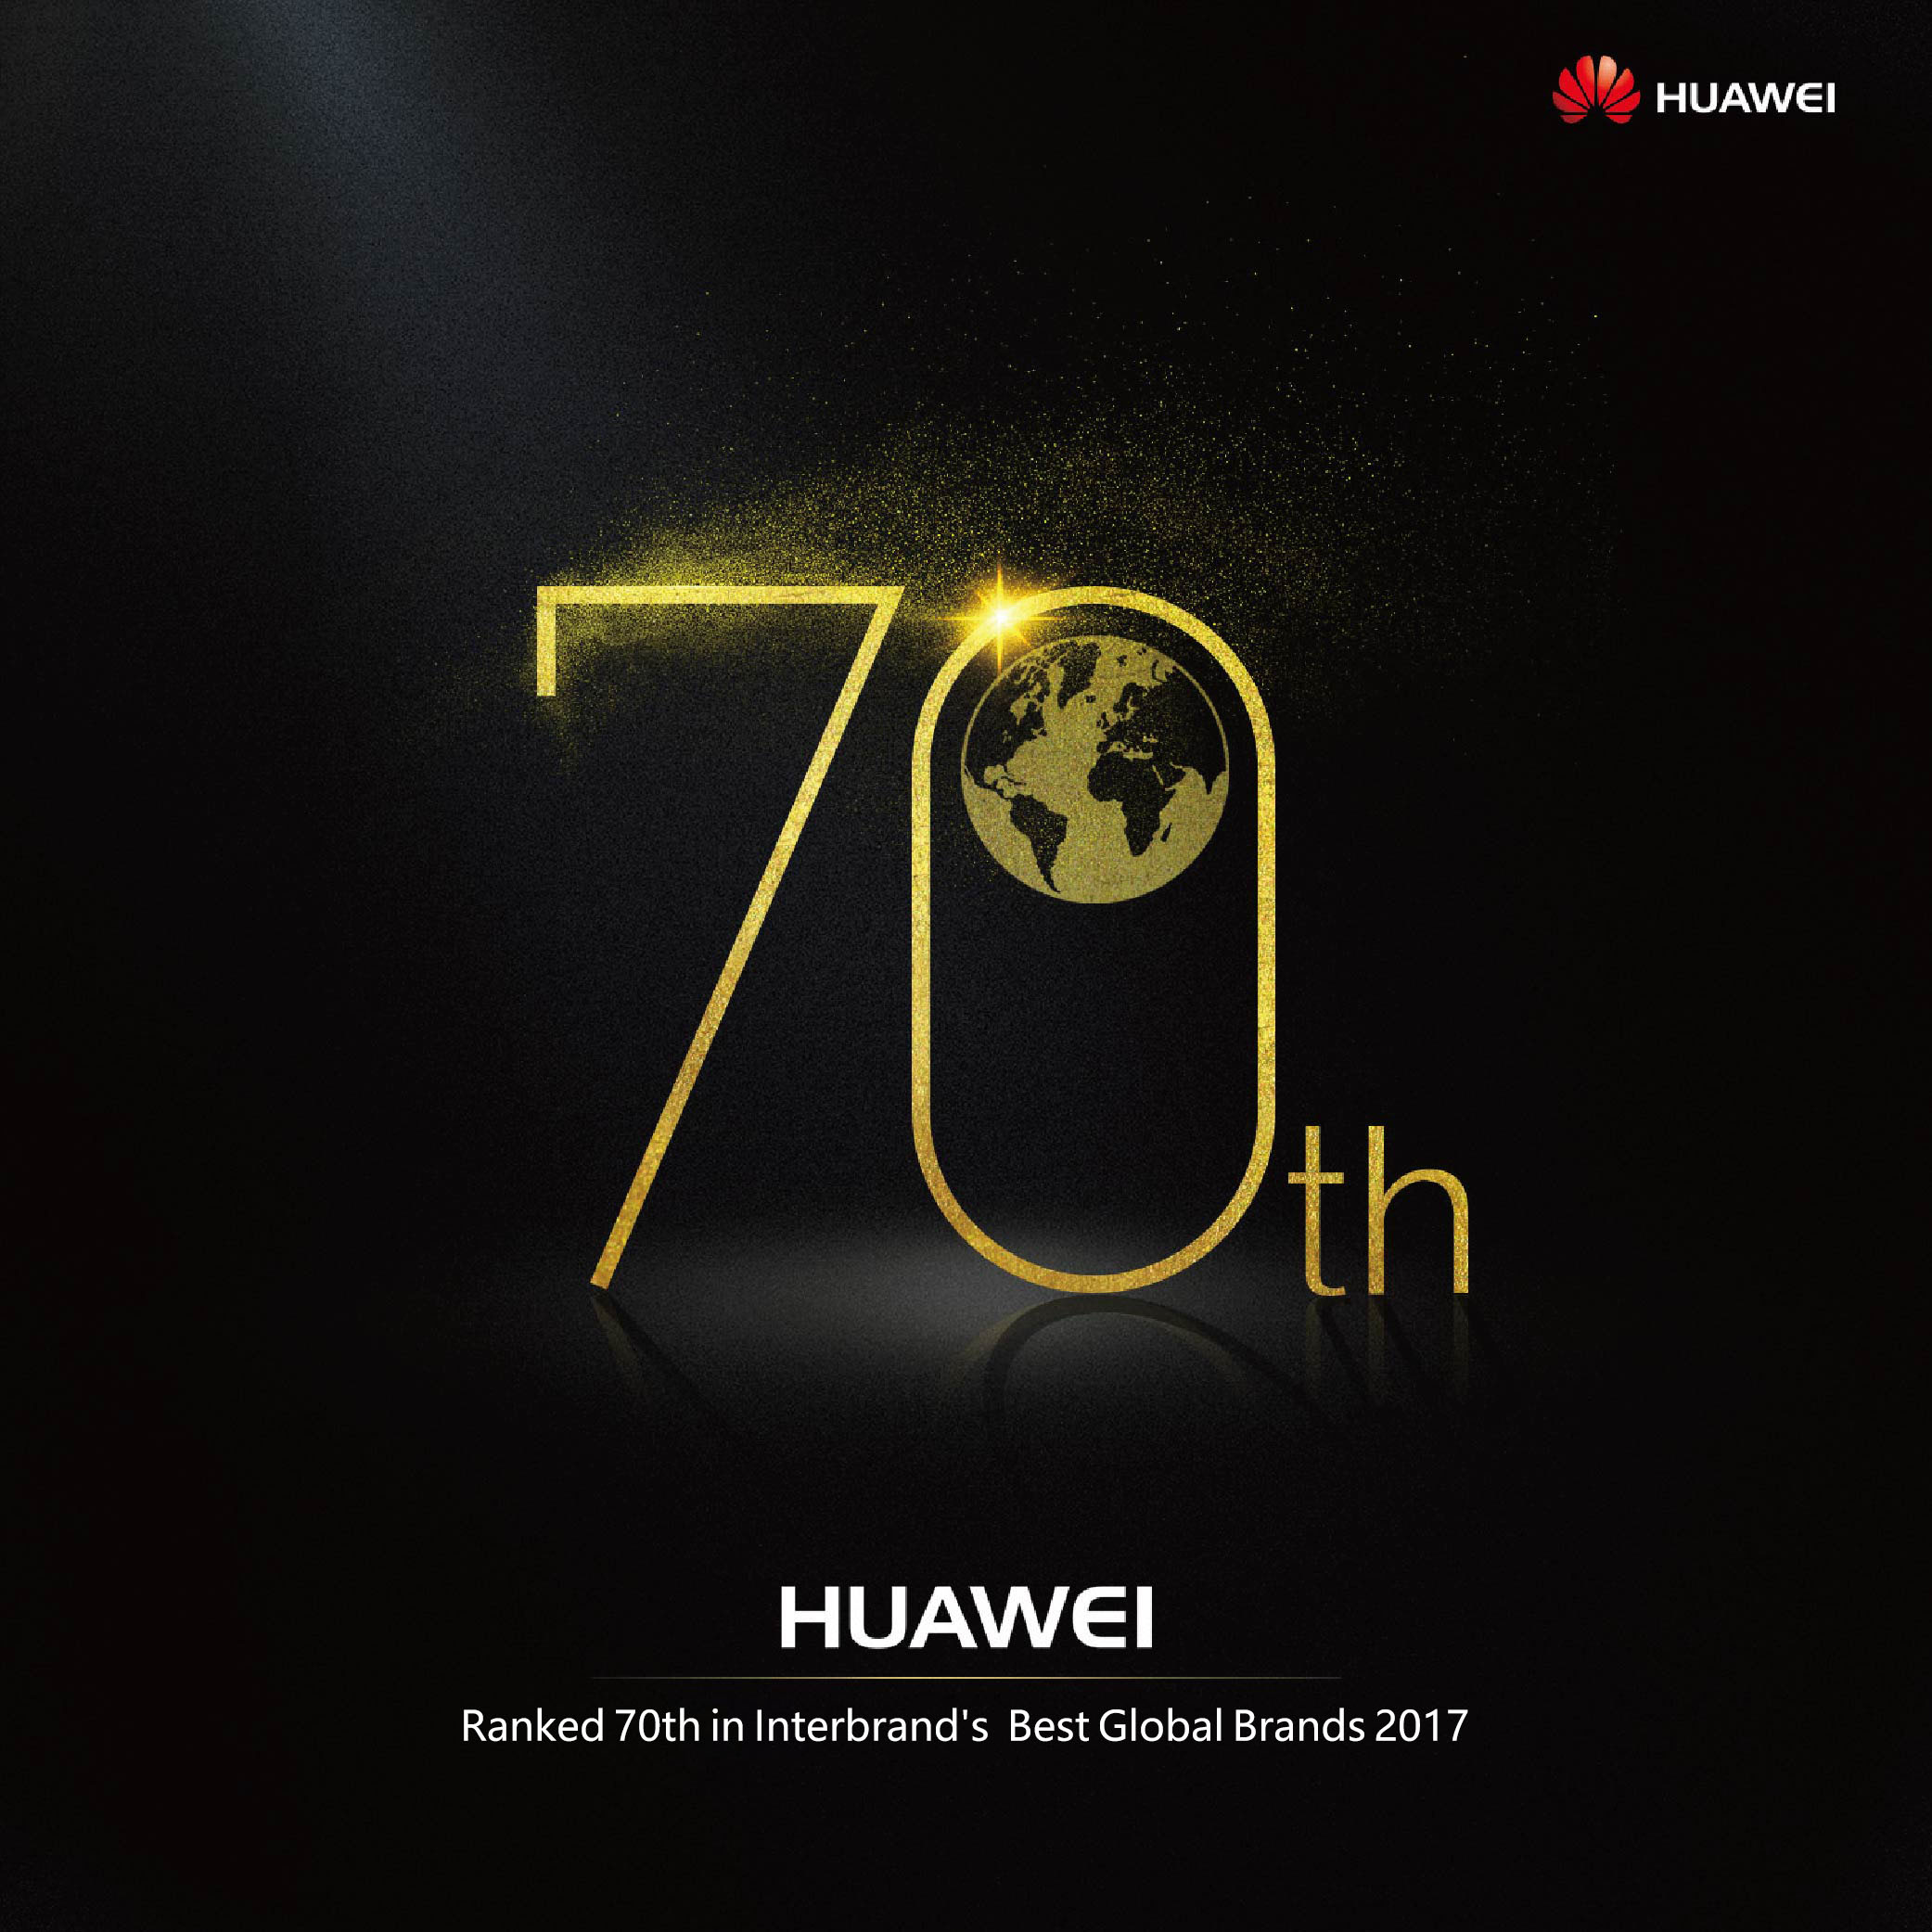 Social post 70th Interbrands Best Global Brands 2017 - Interbrand: Huawei Climbs to Rank 70 on 2017 Best Global Brands Report